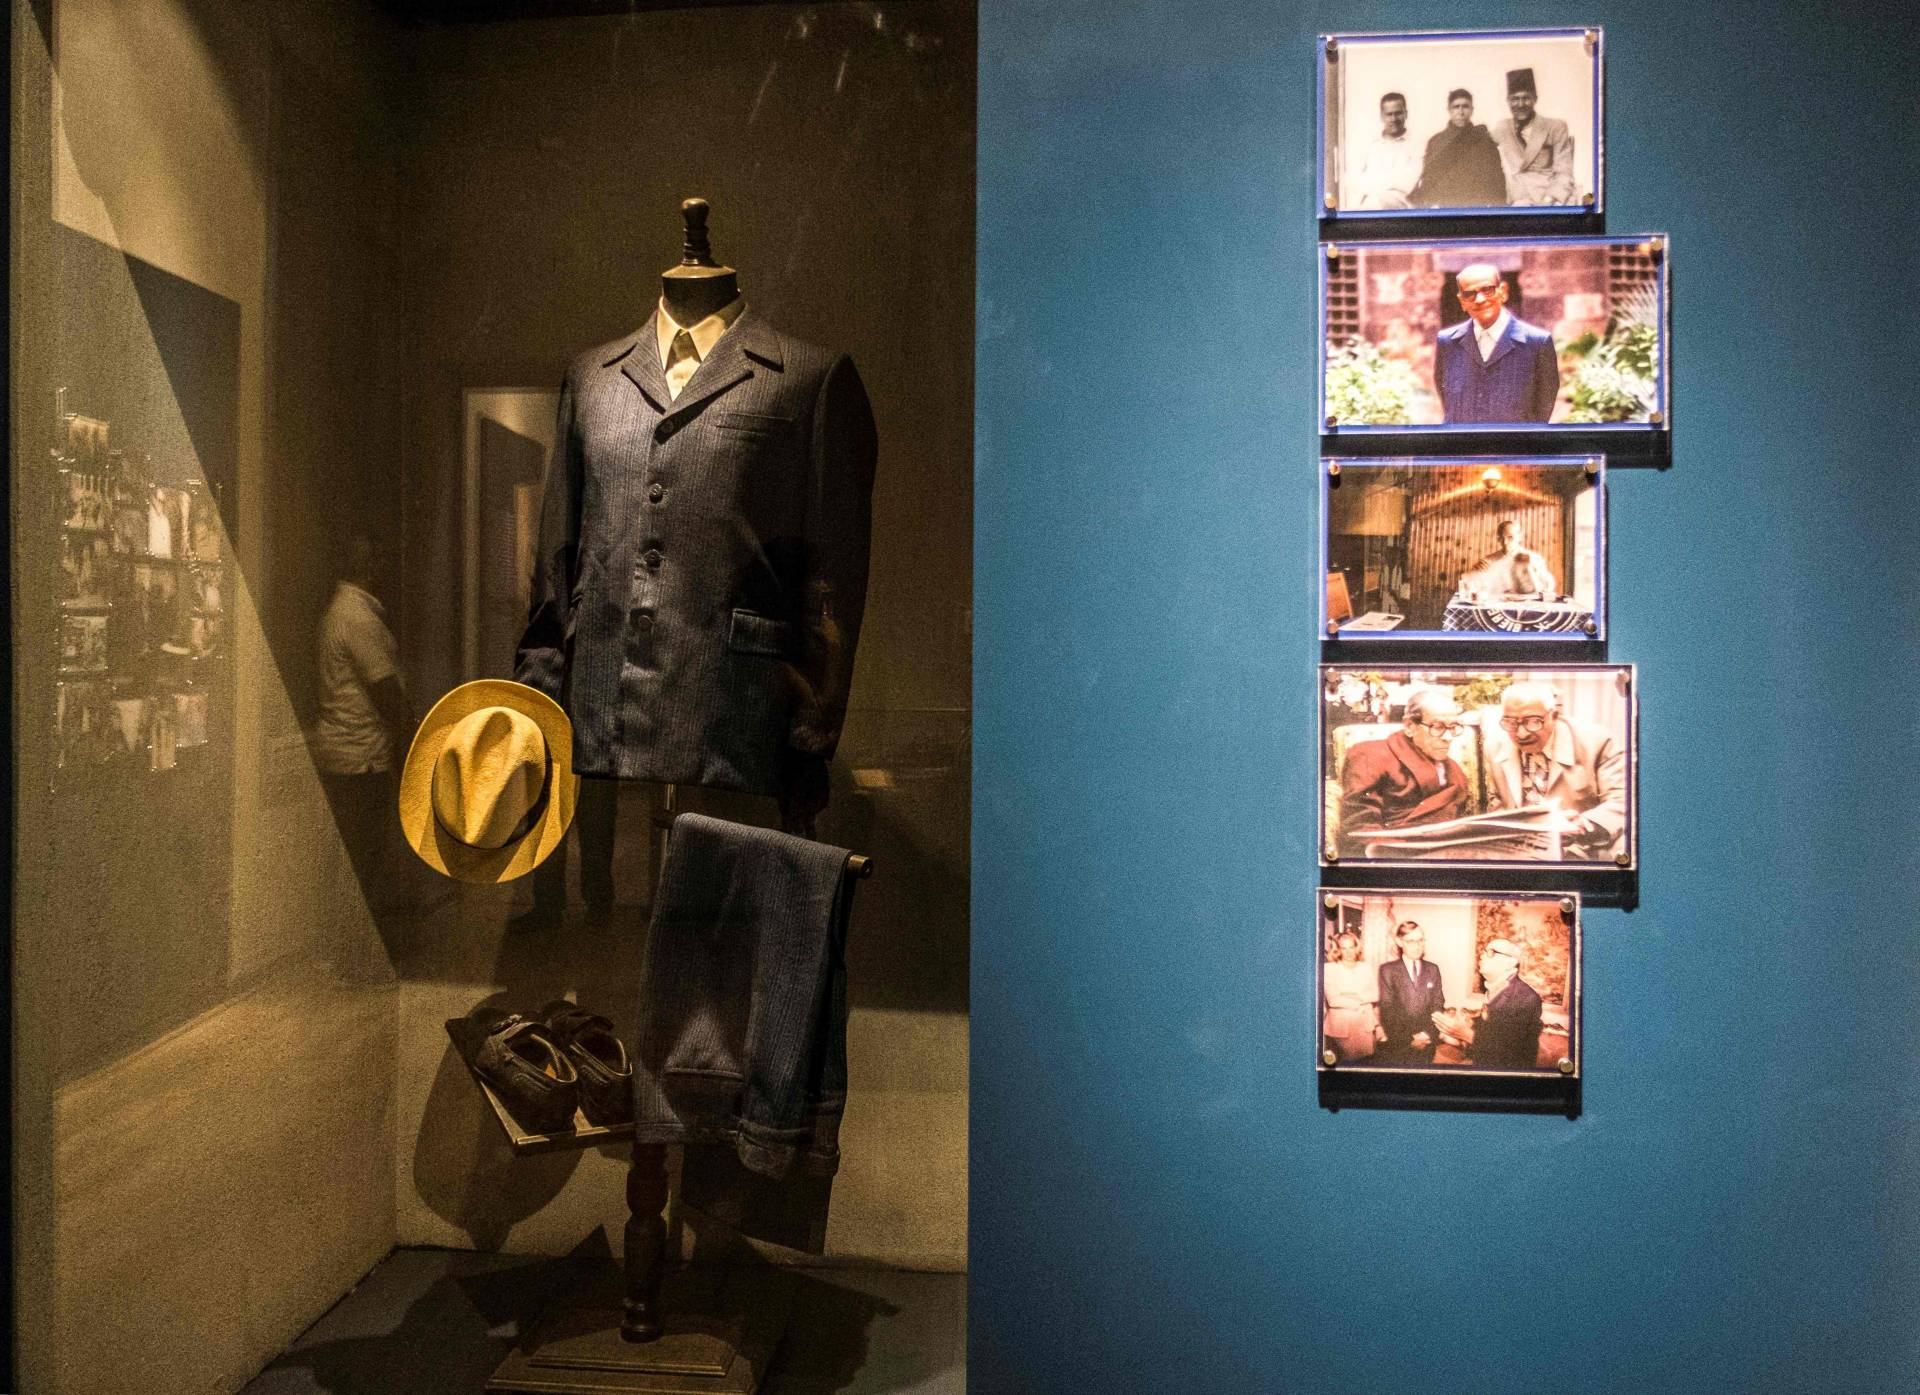 The suit and the hat of Naguib Mahfouz exhibited at the museum. Photo: AFP